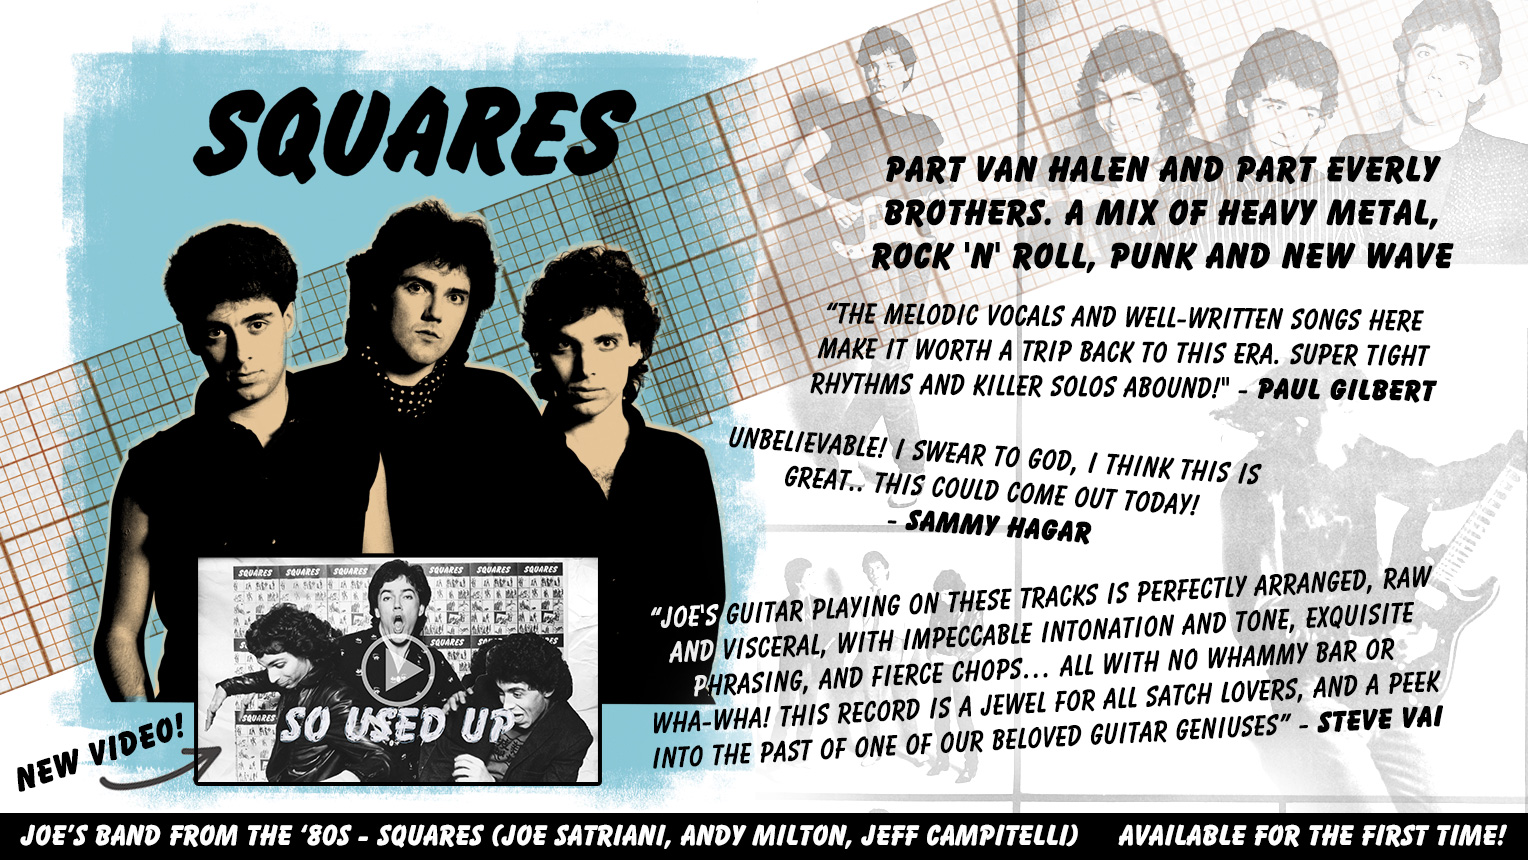 Joe's Band From the '80s: SQUARES